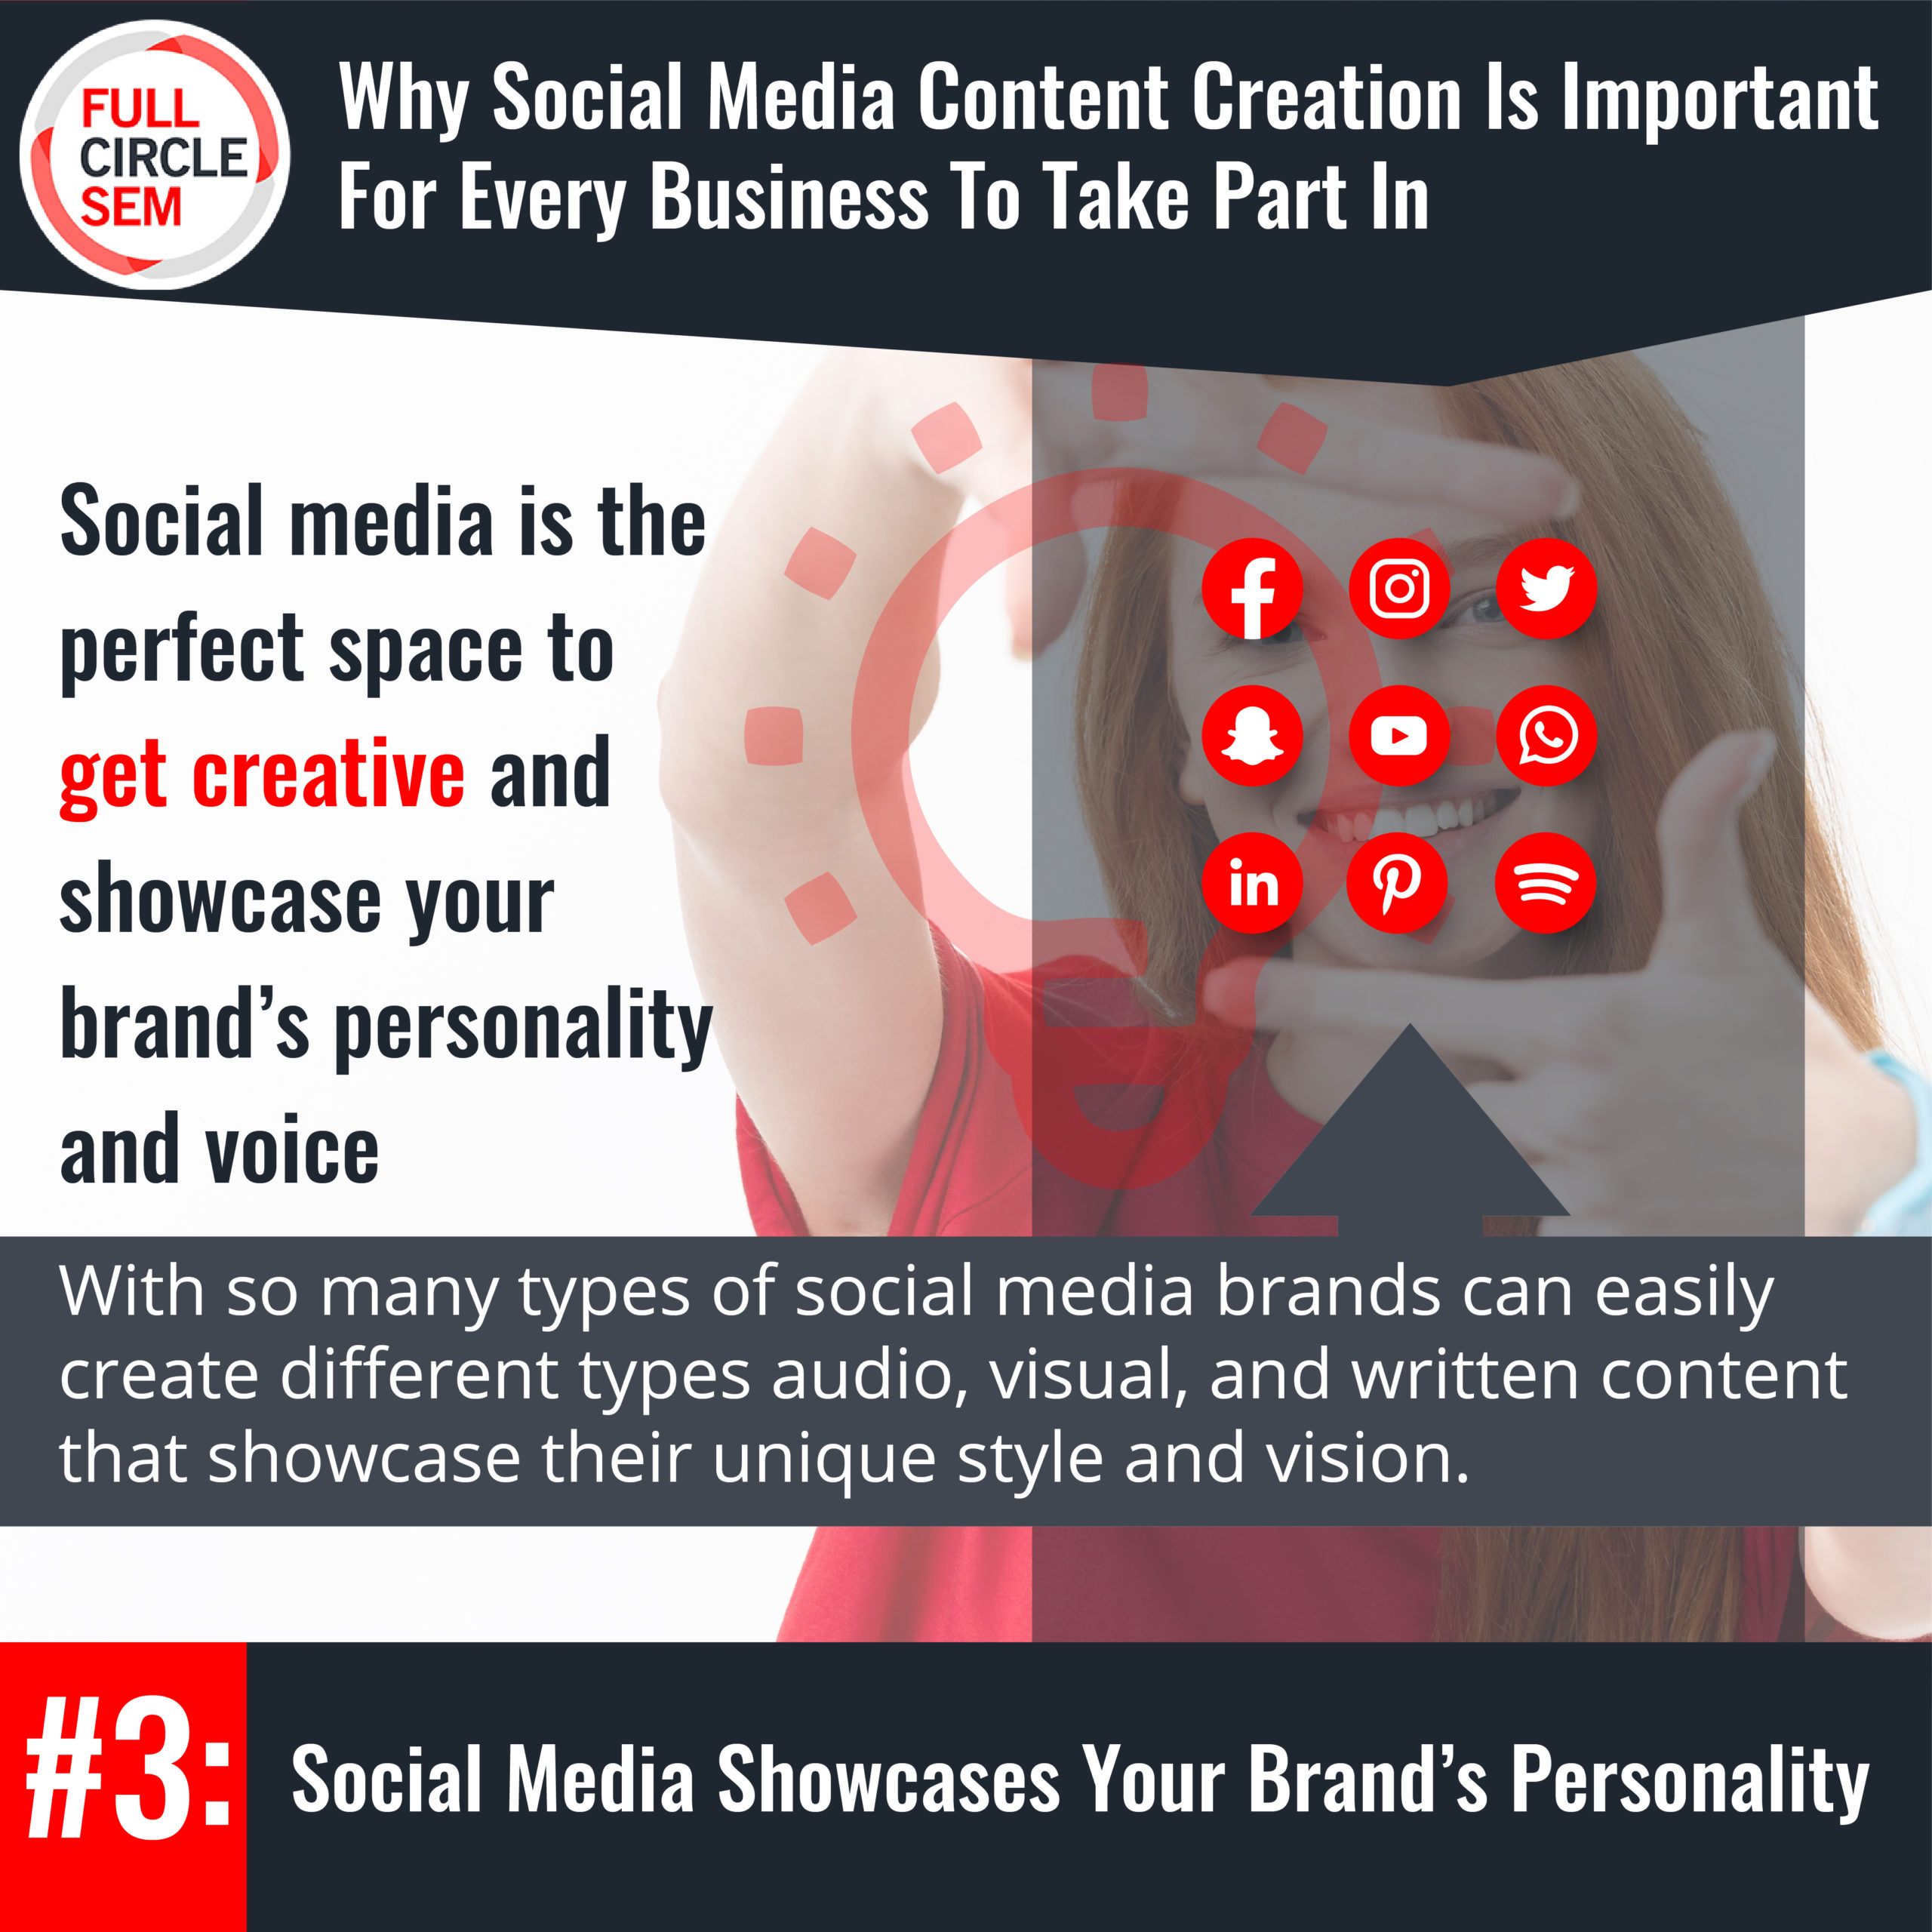 showcare your brand's personality